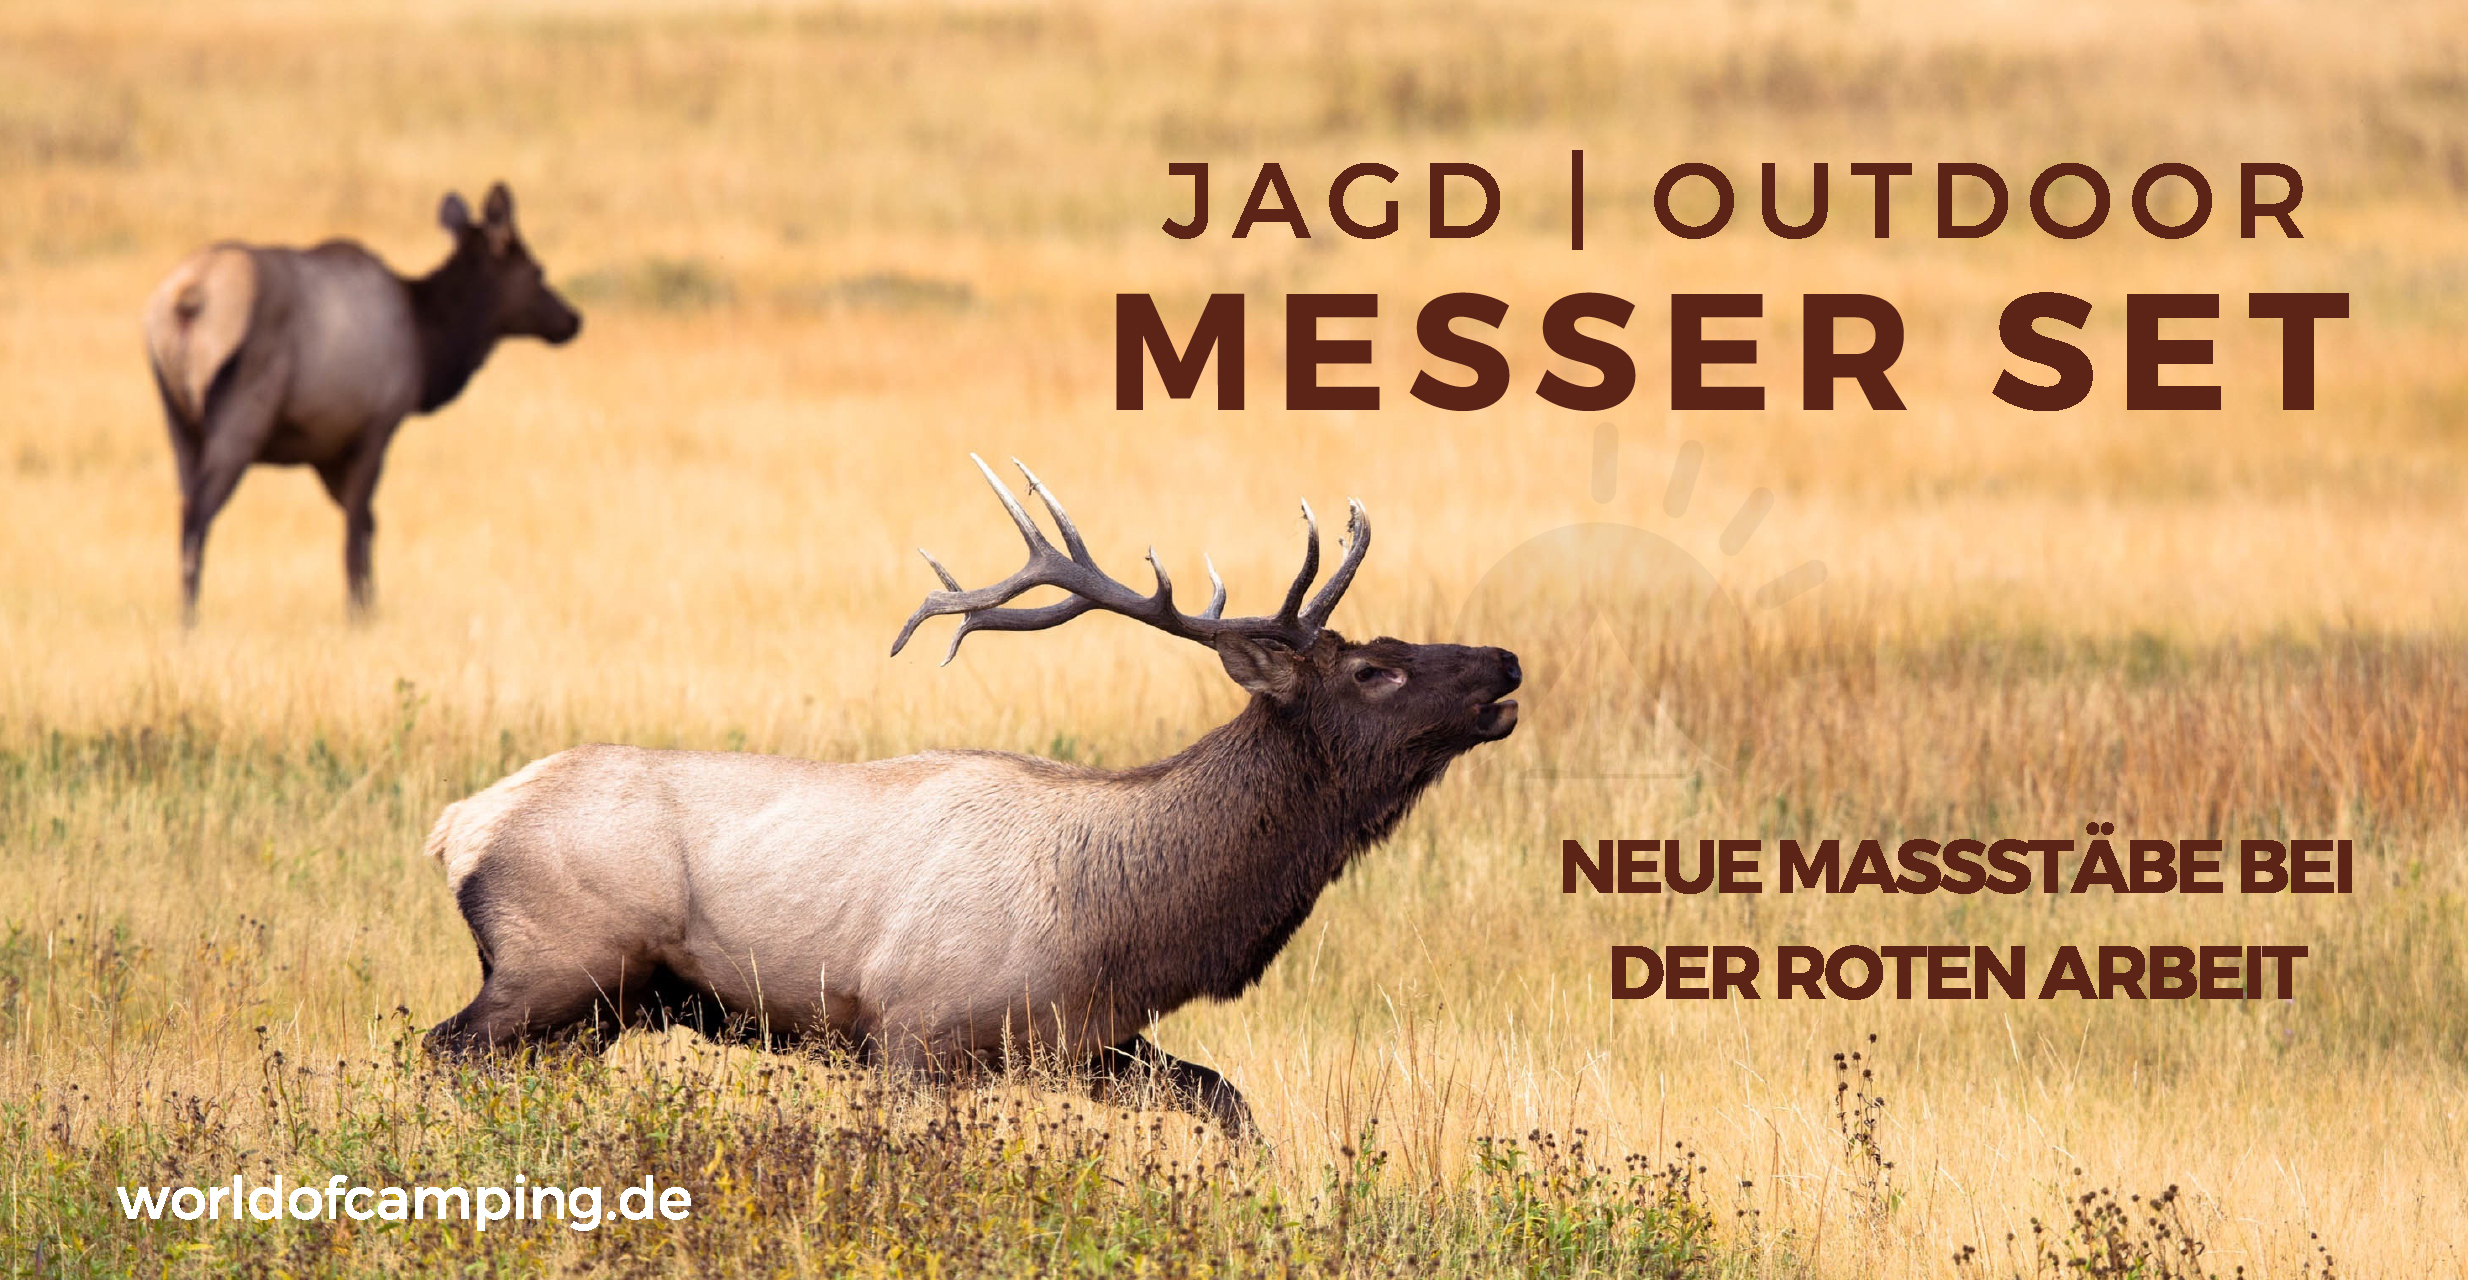 Dick Messerset Gekösemesser Jagd Outdoor